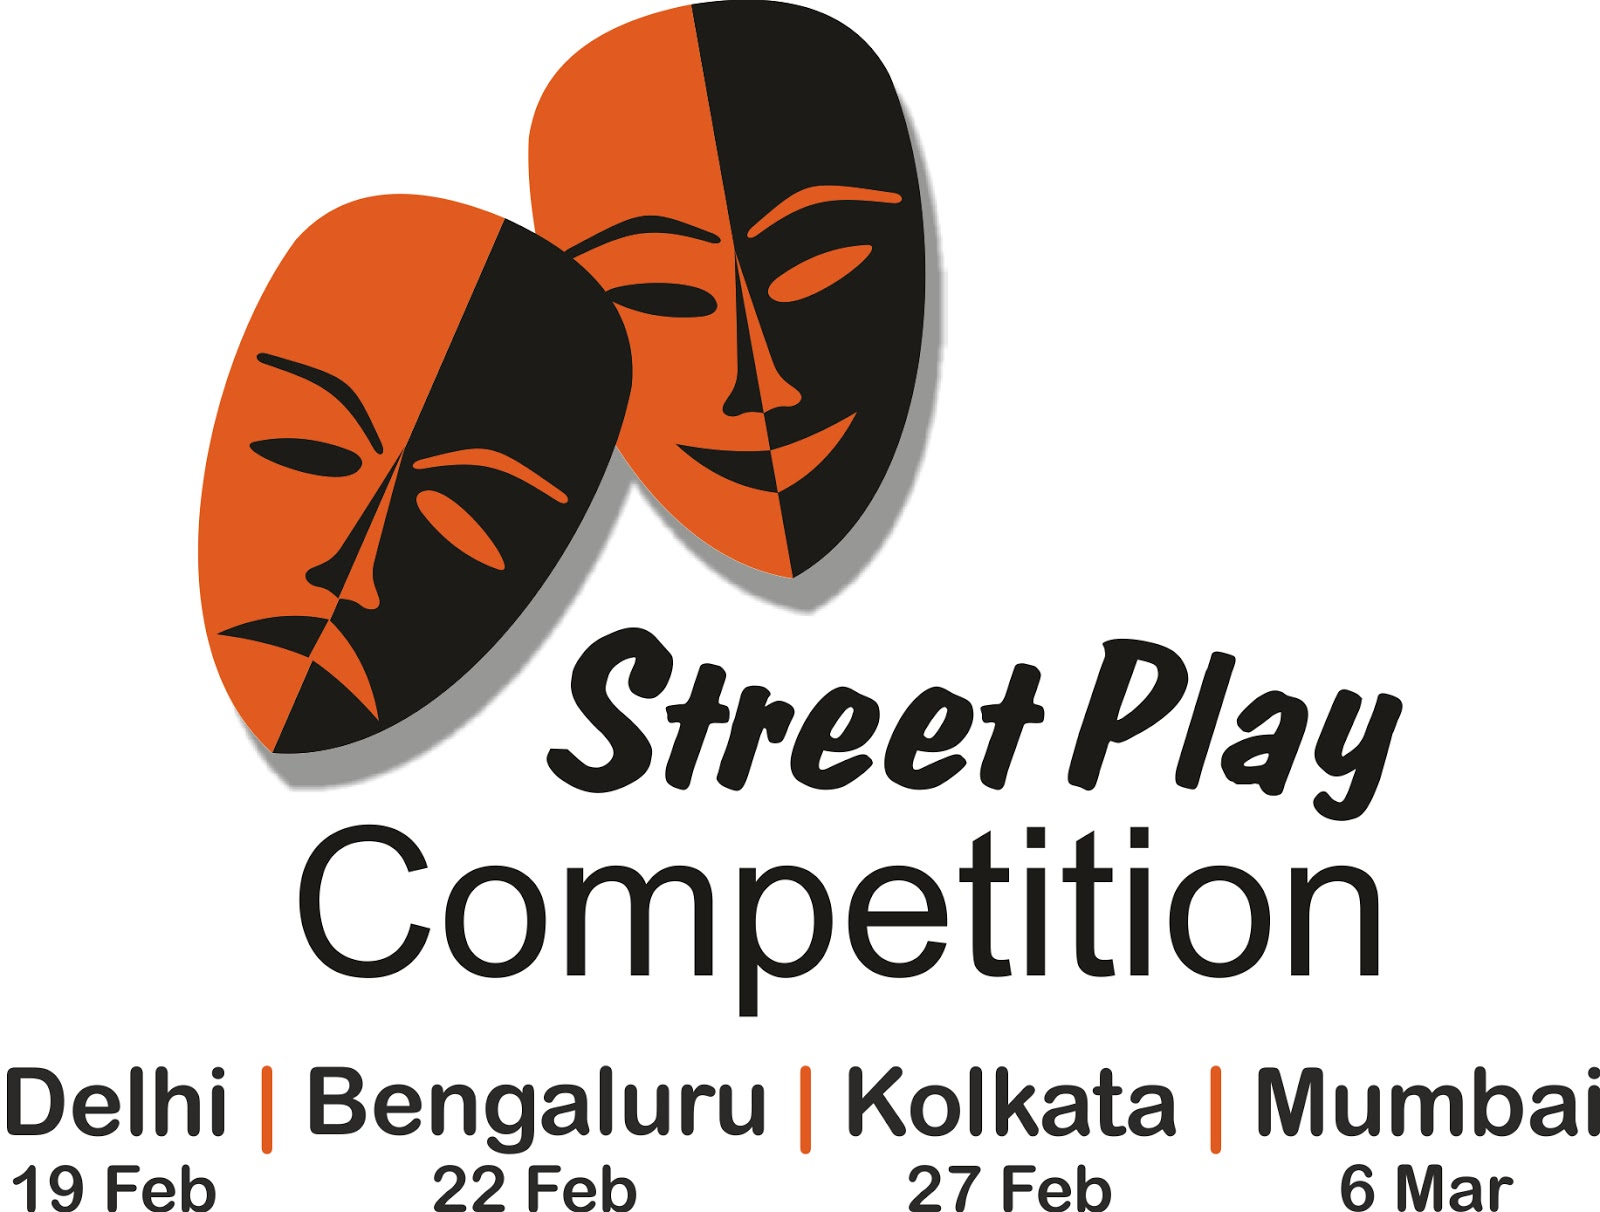 Street Play Competition Entry Form Applications Now Open